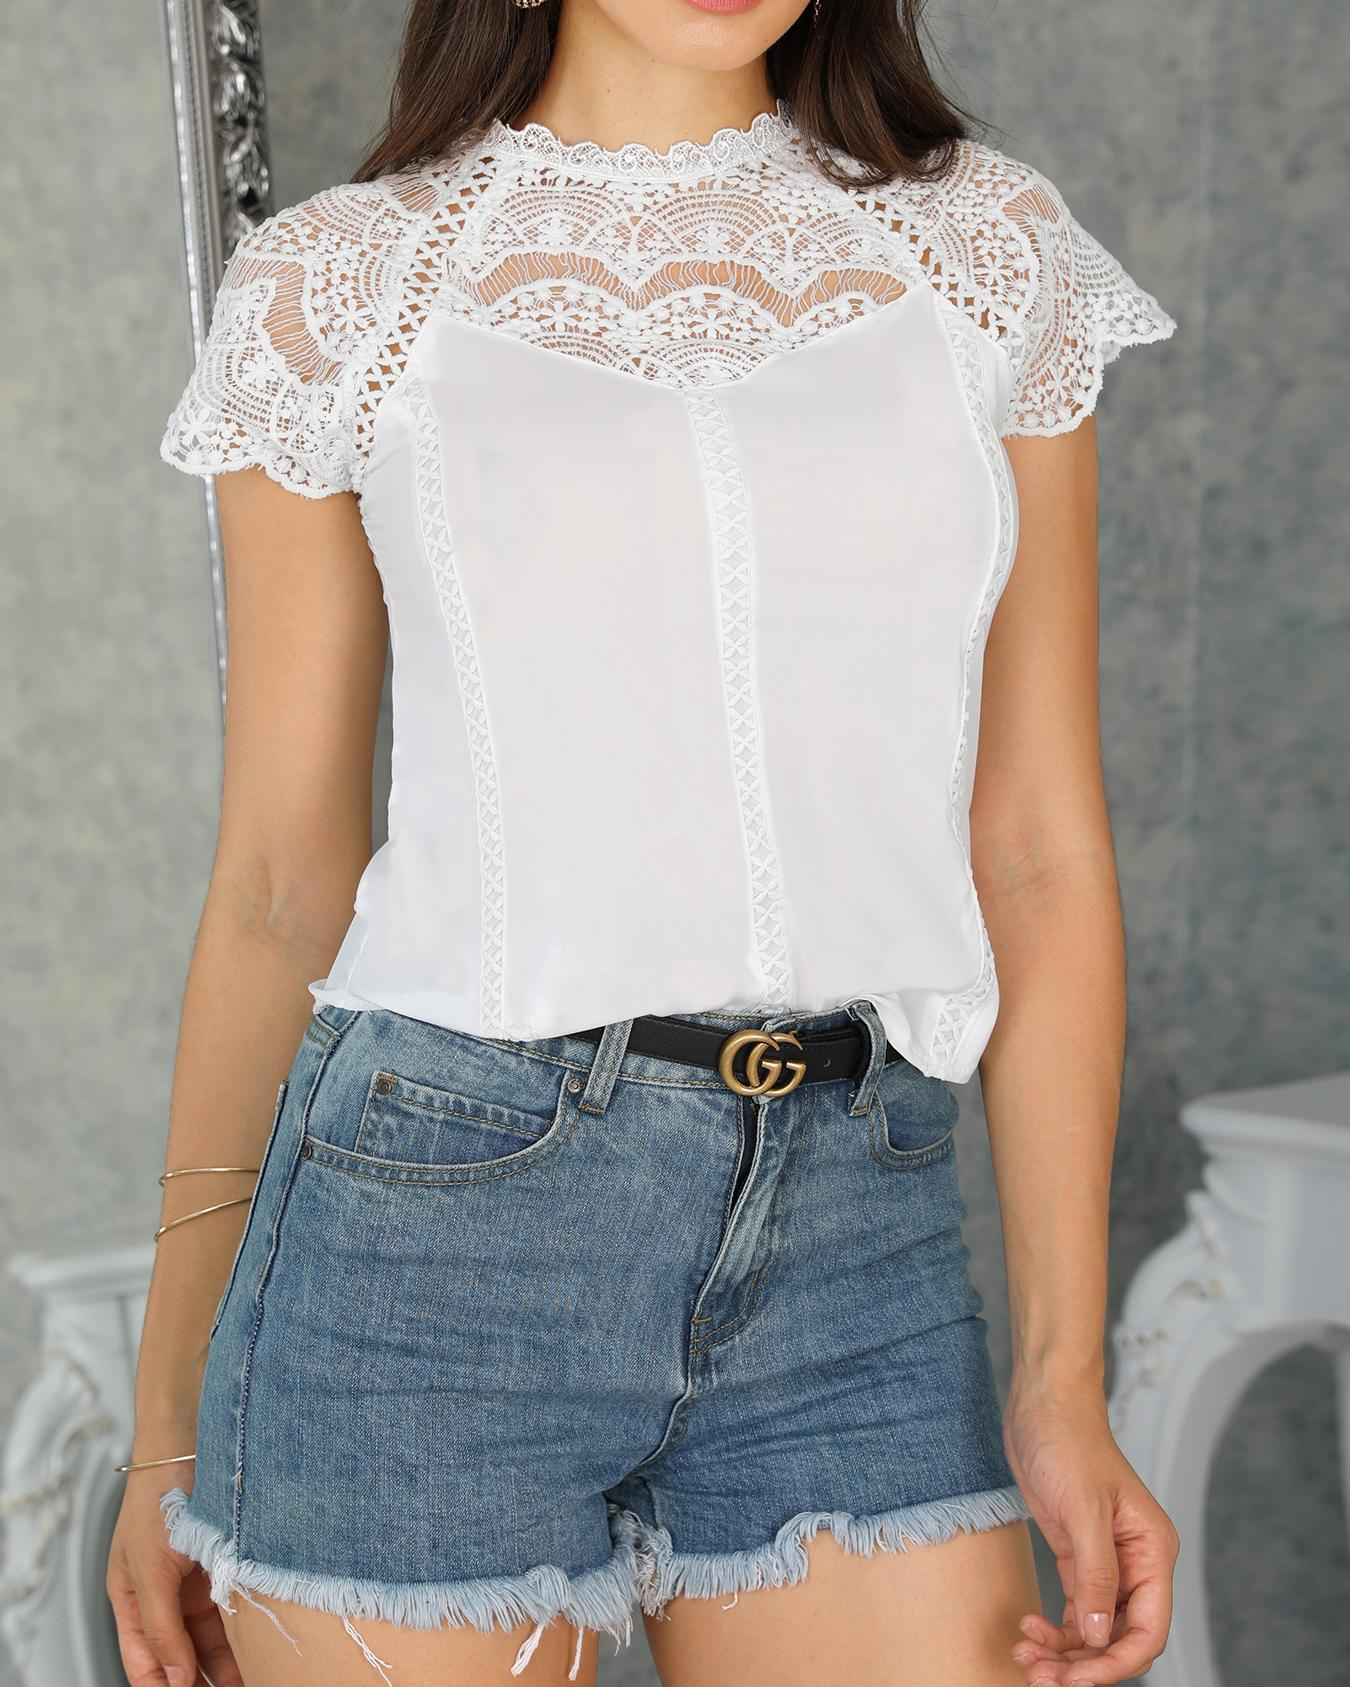 chicme / Crochet Lace Trim Splicing Blusa Casual